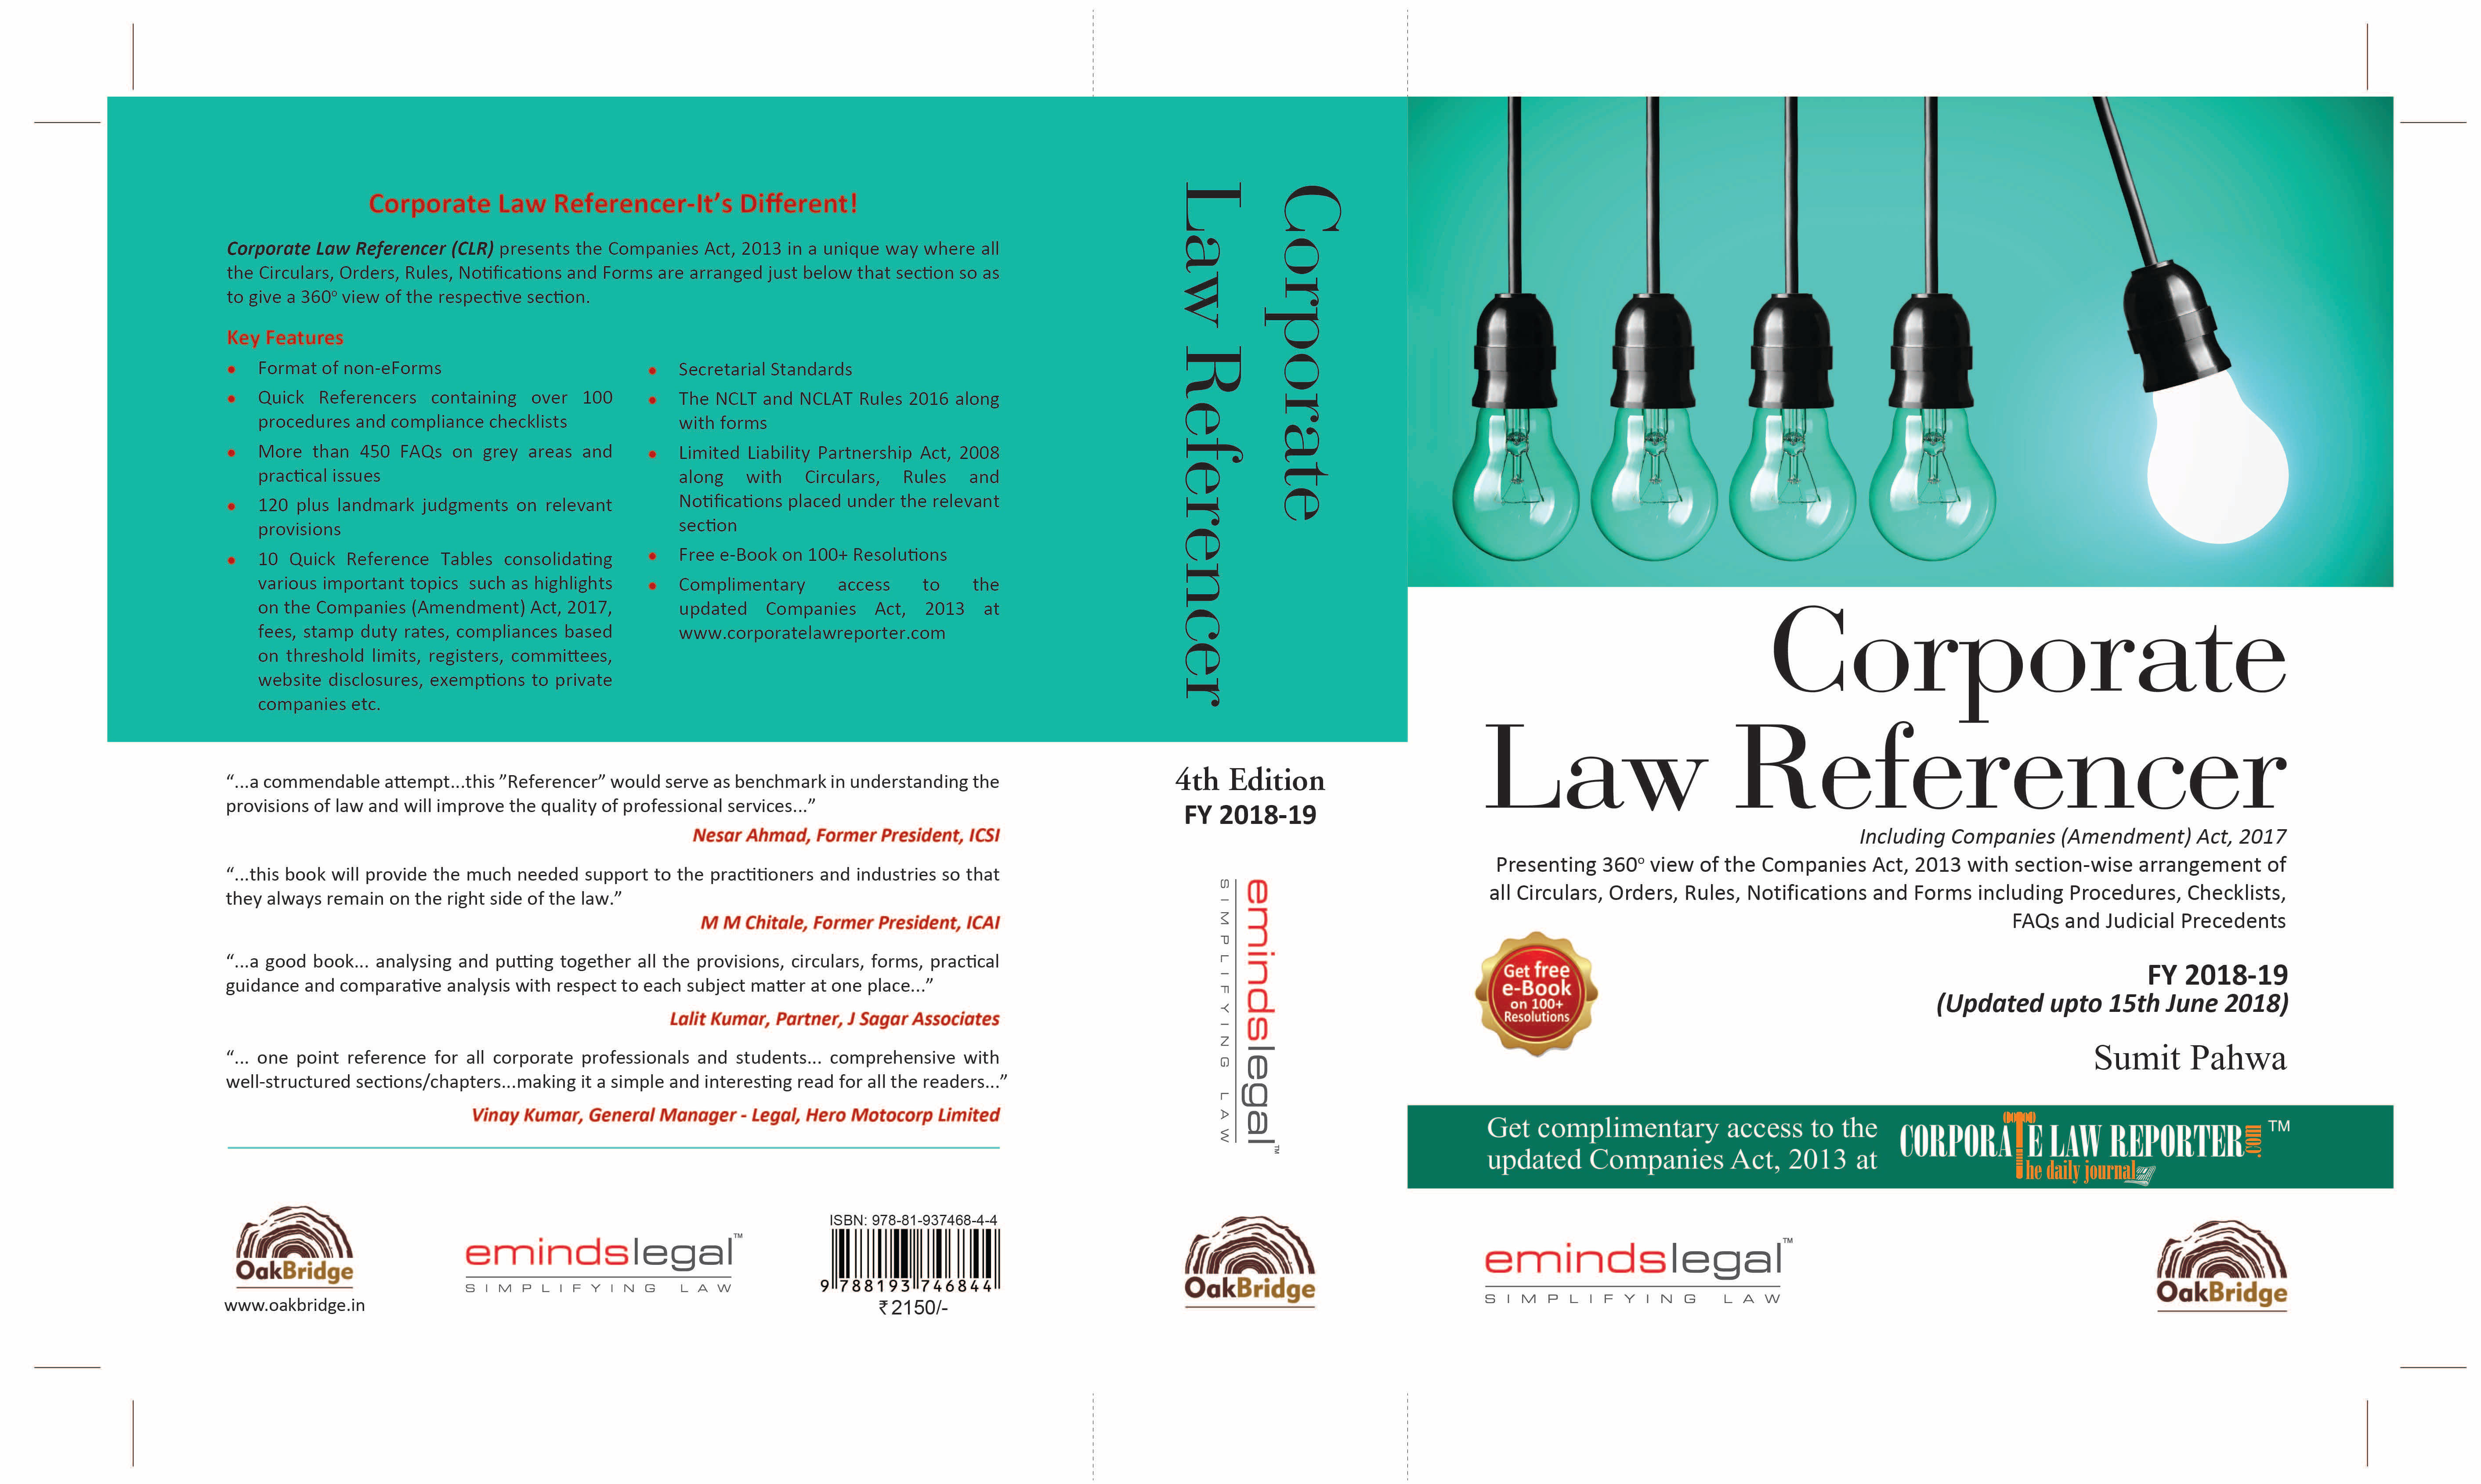 Corporate Law Referencer back cover 4th edition